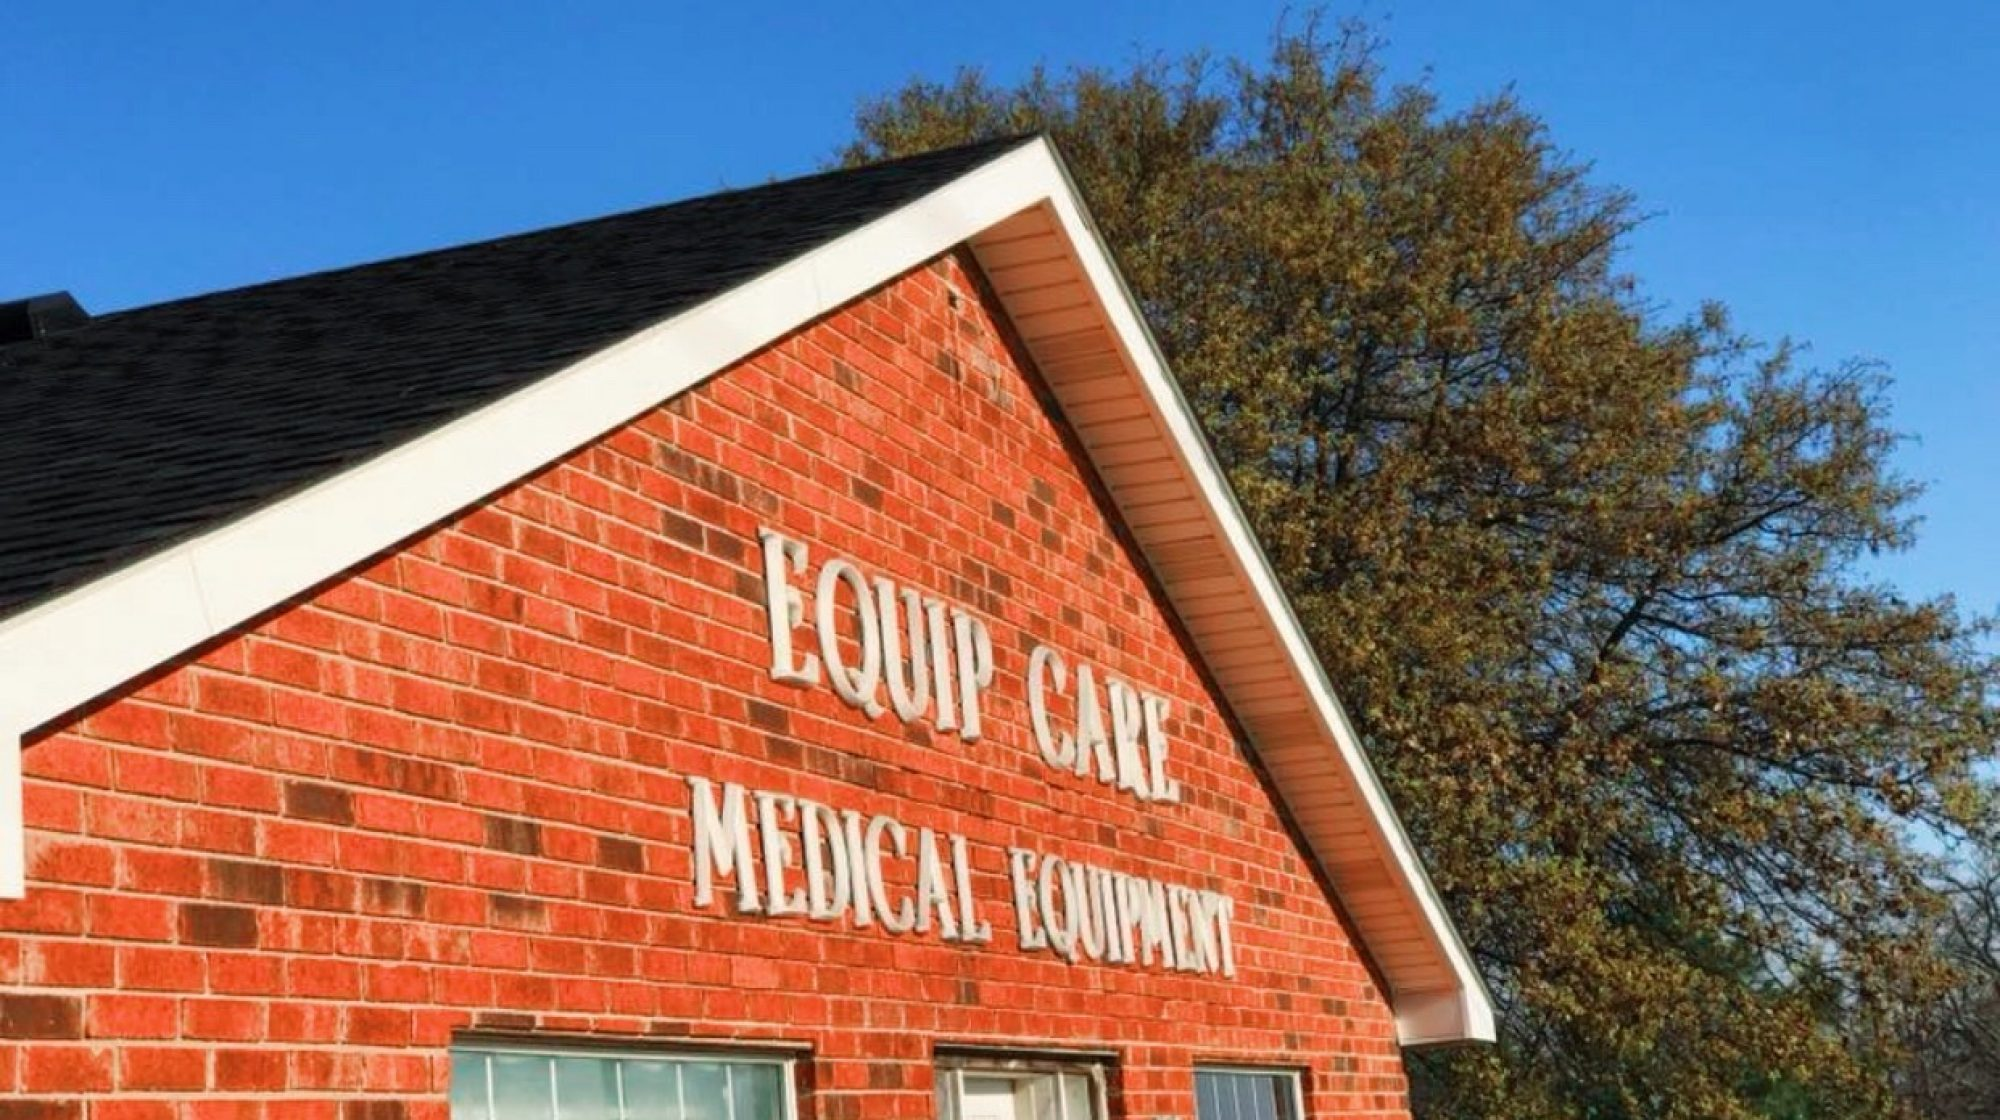 Equip Care Medical Equipment